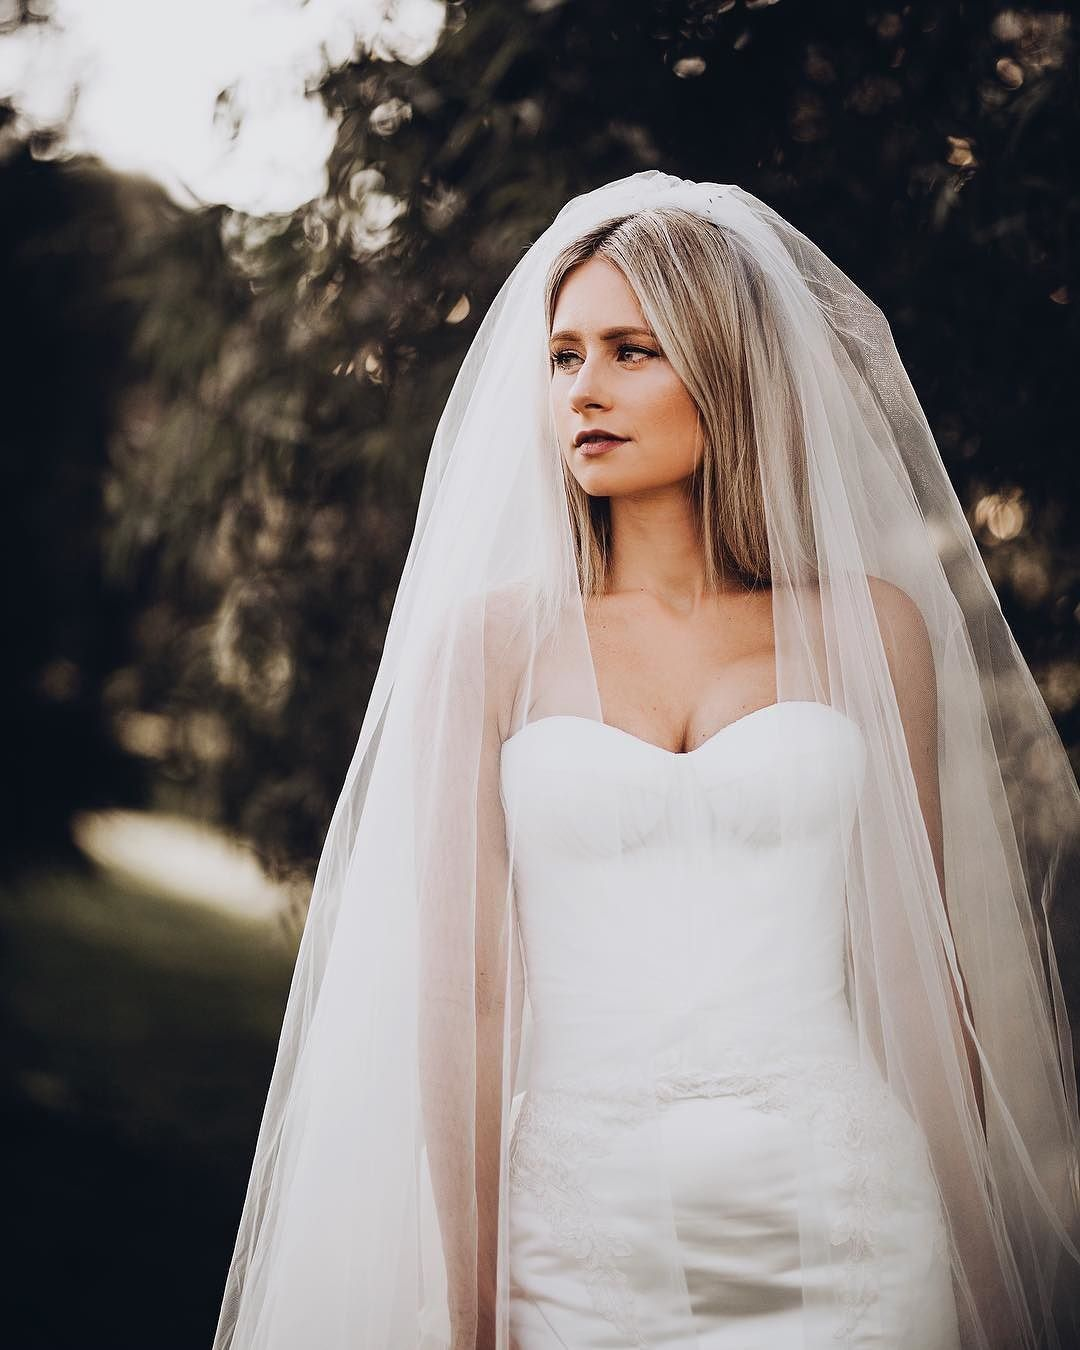 This Veil Tulle Two Tier Cathedral Length Veil By White X Vera Wang Exclusively At David S Bridal Wedding Dress Inspiration David S Bridal Veils Bridal [ 1350 x 1080 Pixel ]